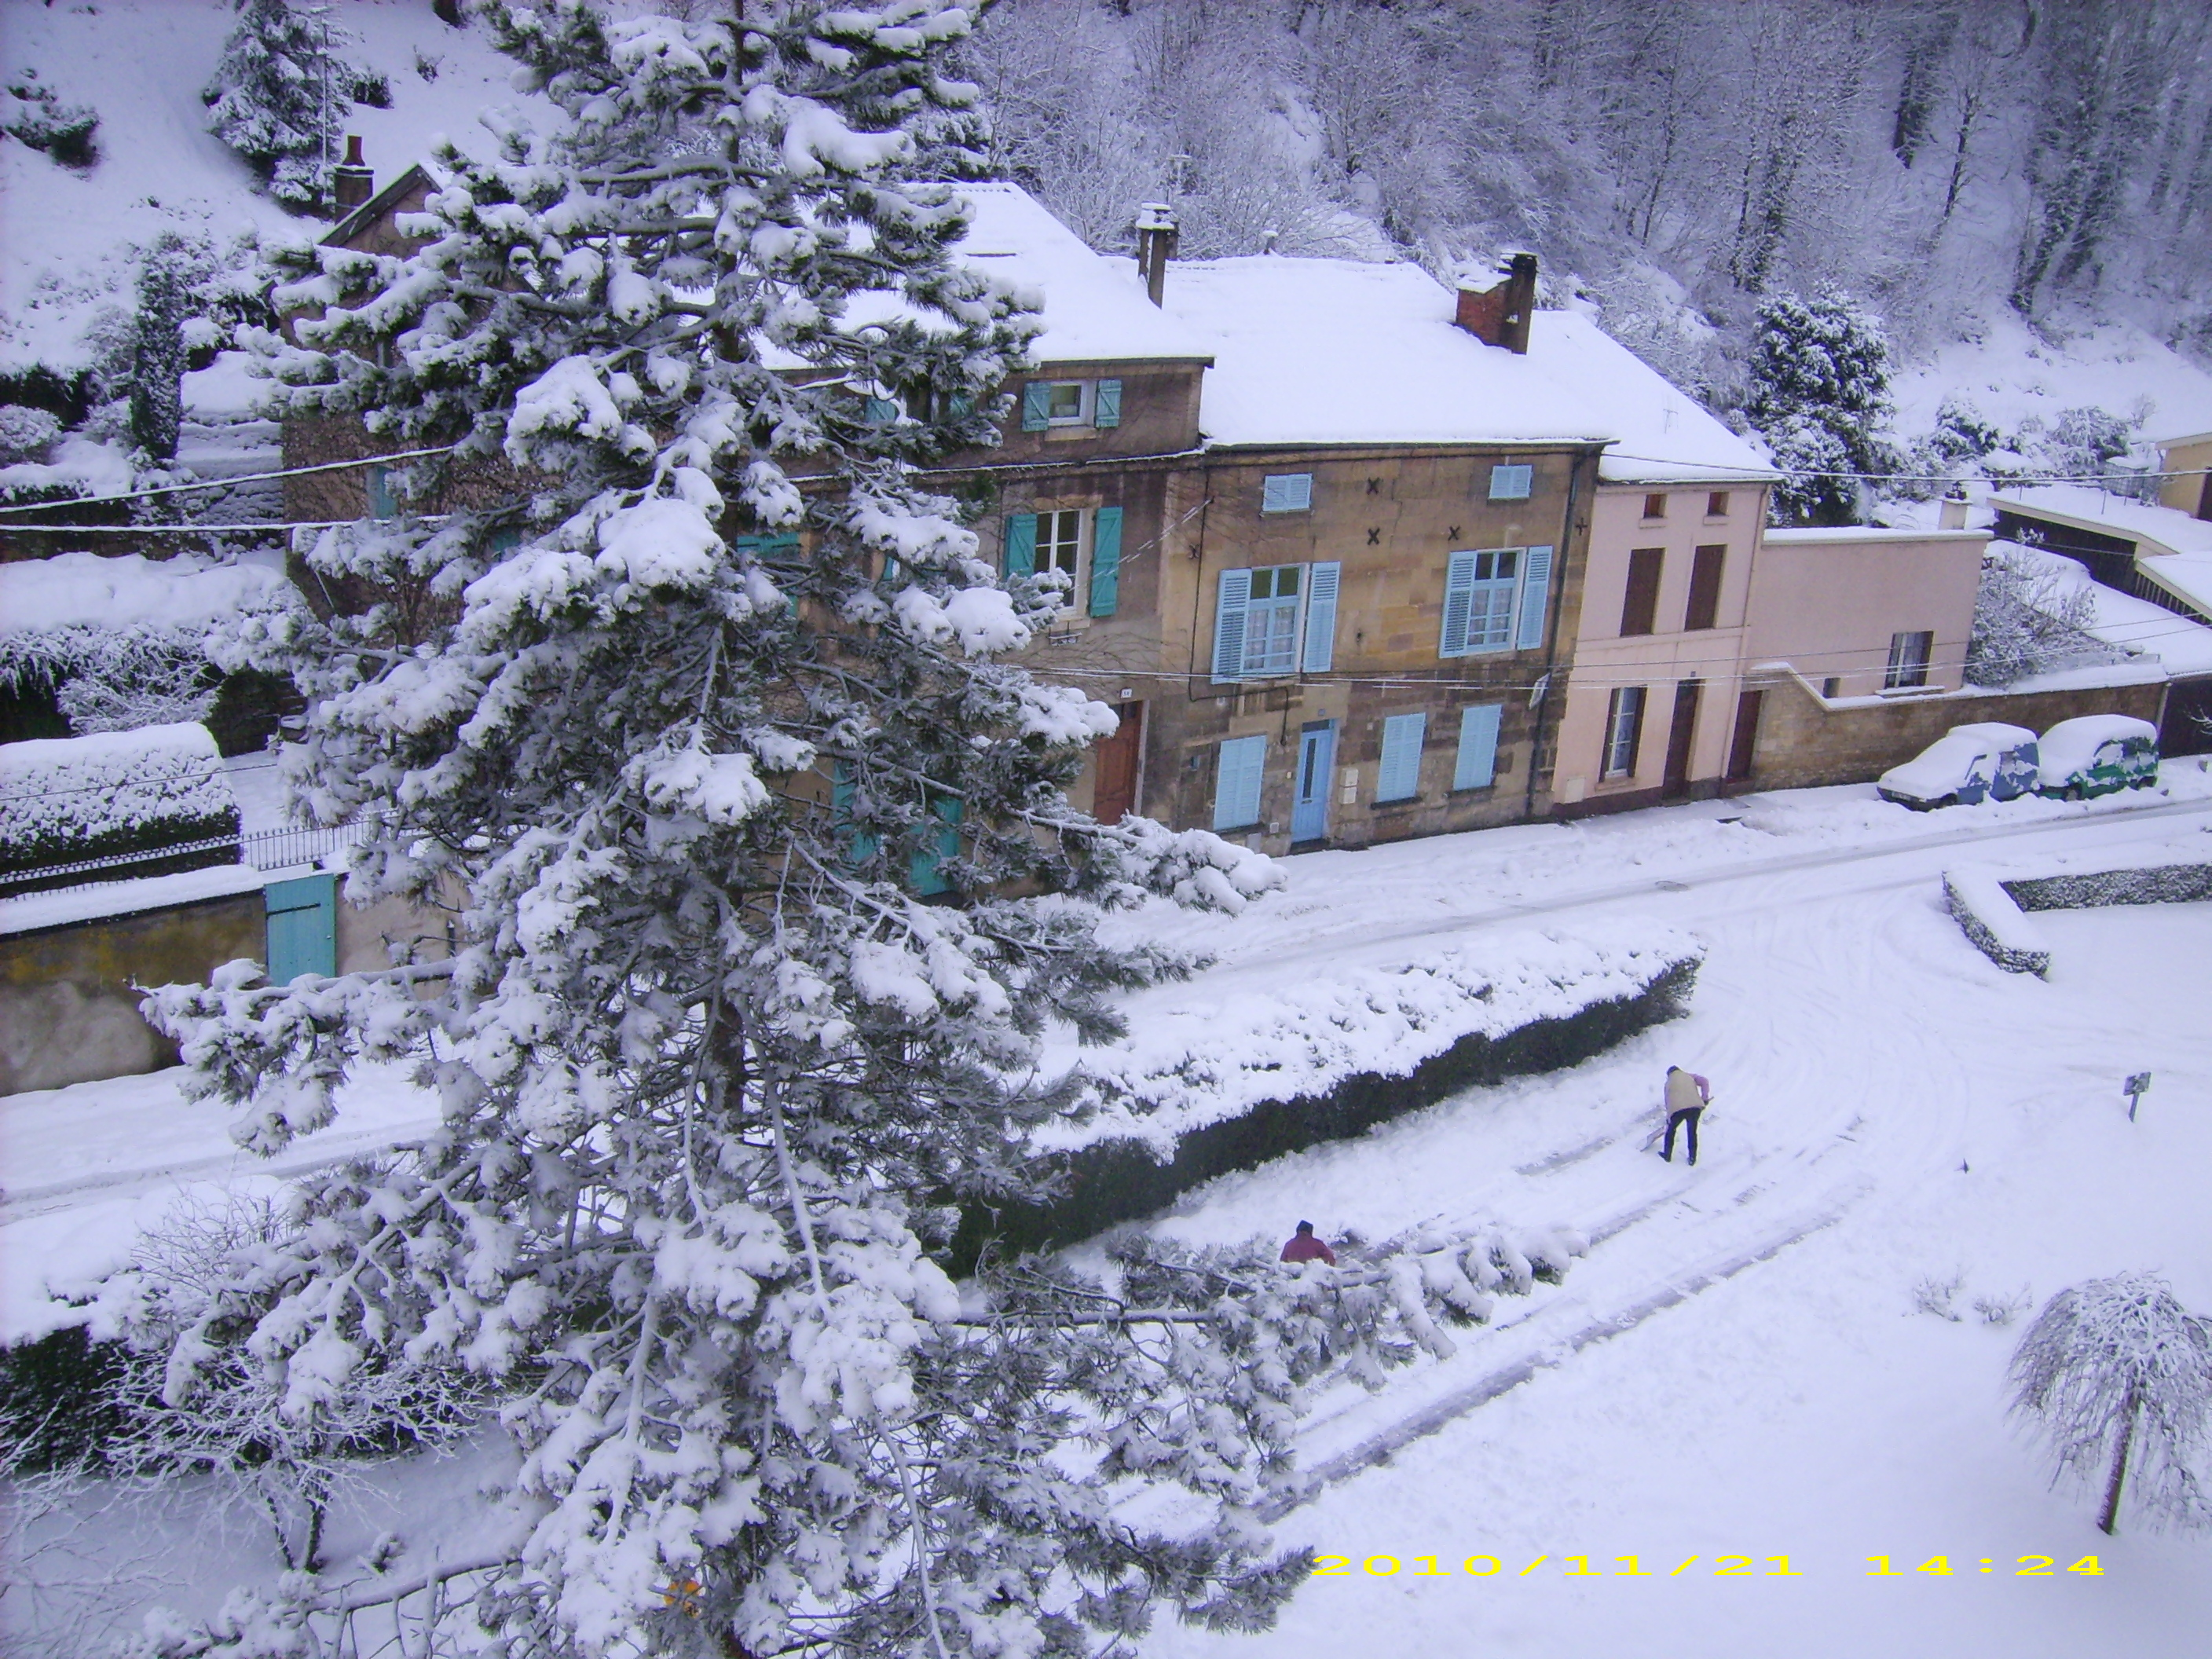 Photo bar le duc 55000 bar le duc sous la neige for Piscine bar le duc